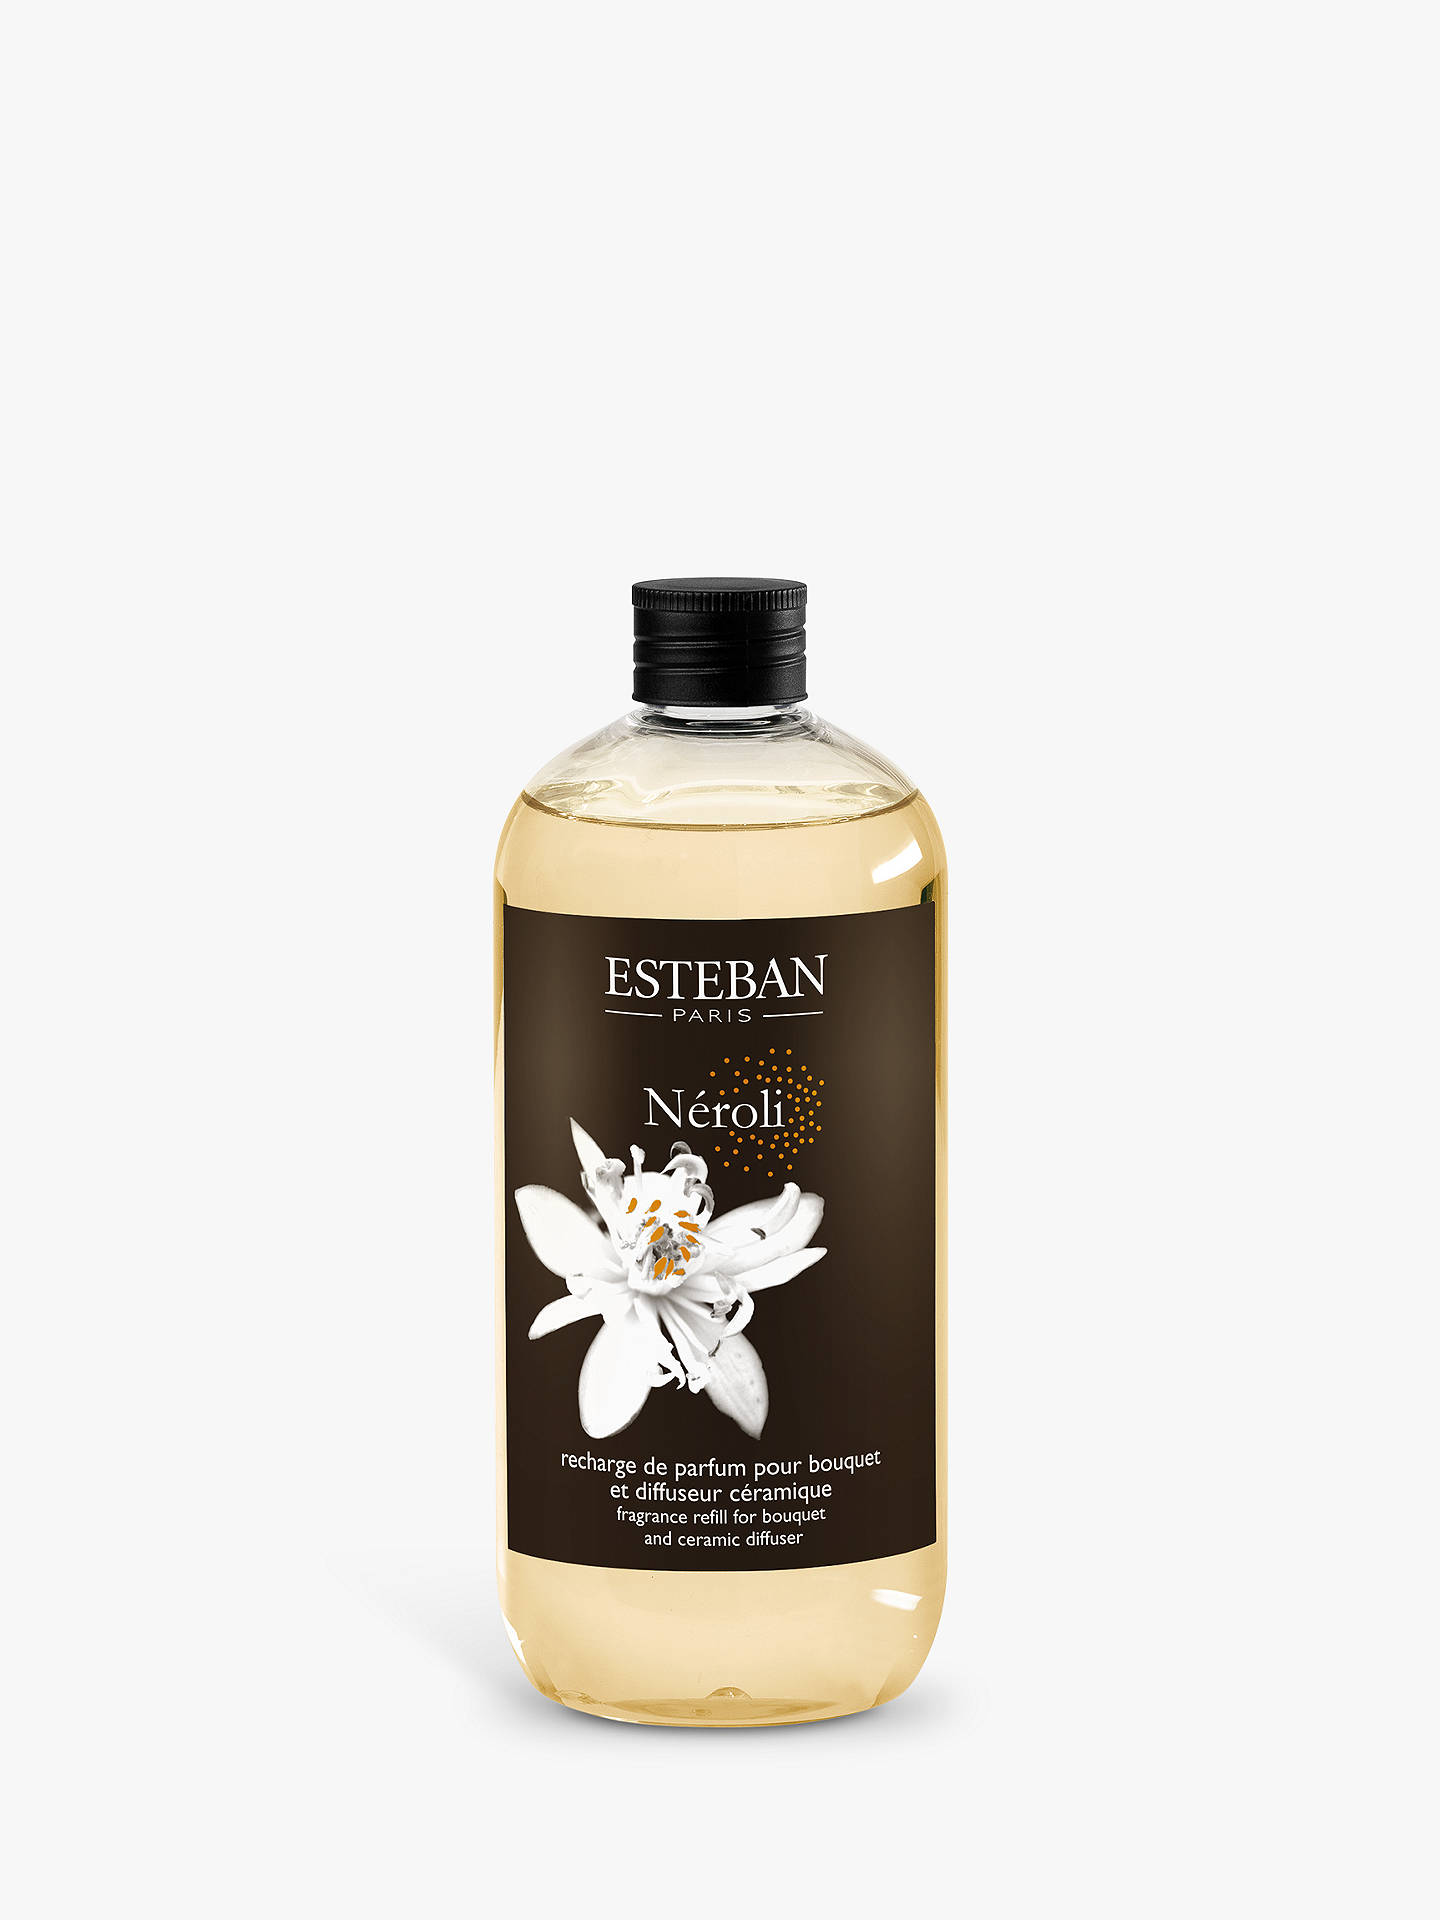 BuyEsteban Neroli Diffuser Refill, 500ml Online at johnlewis.com